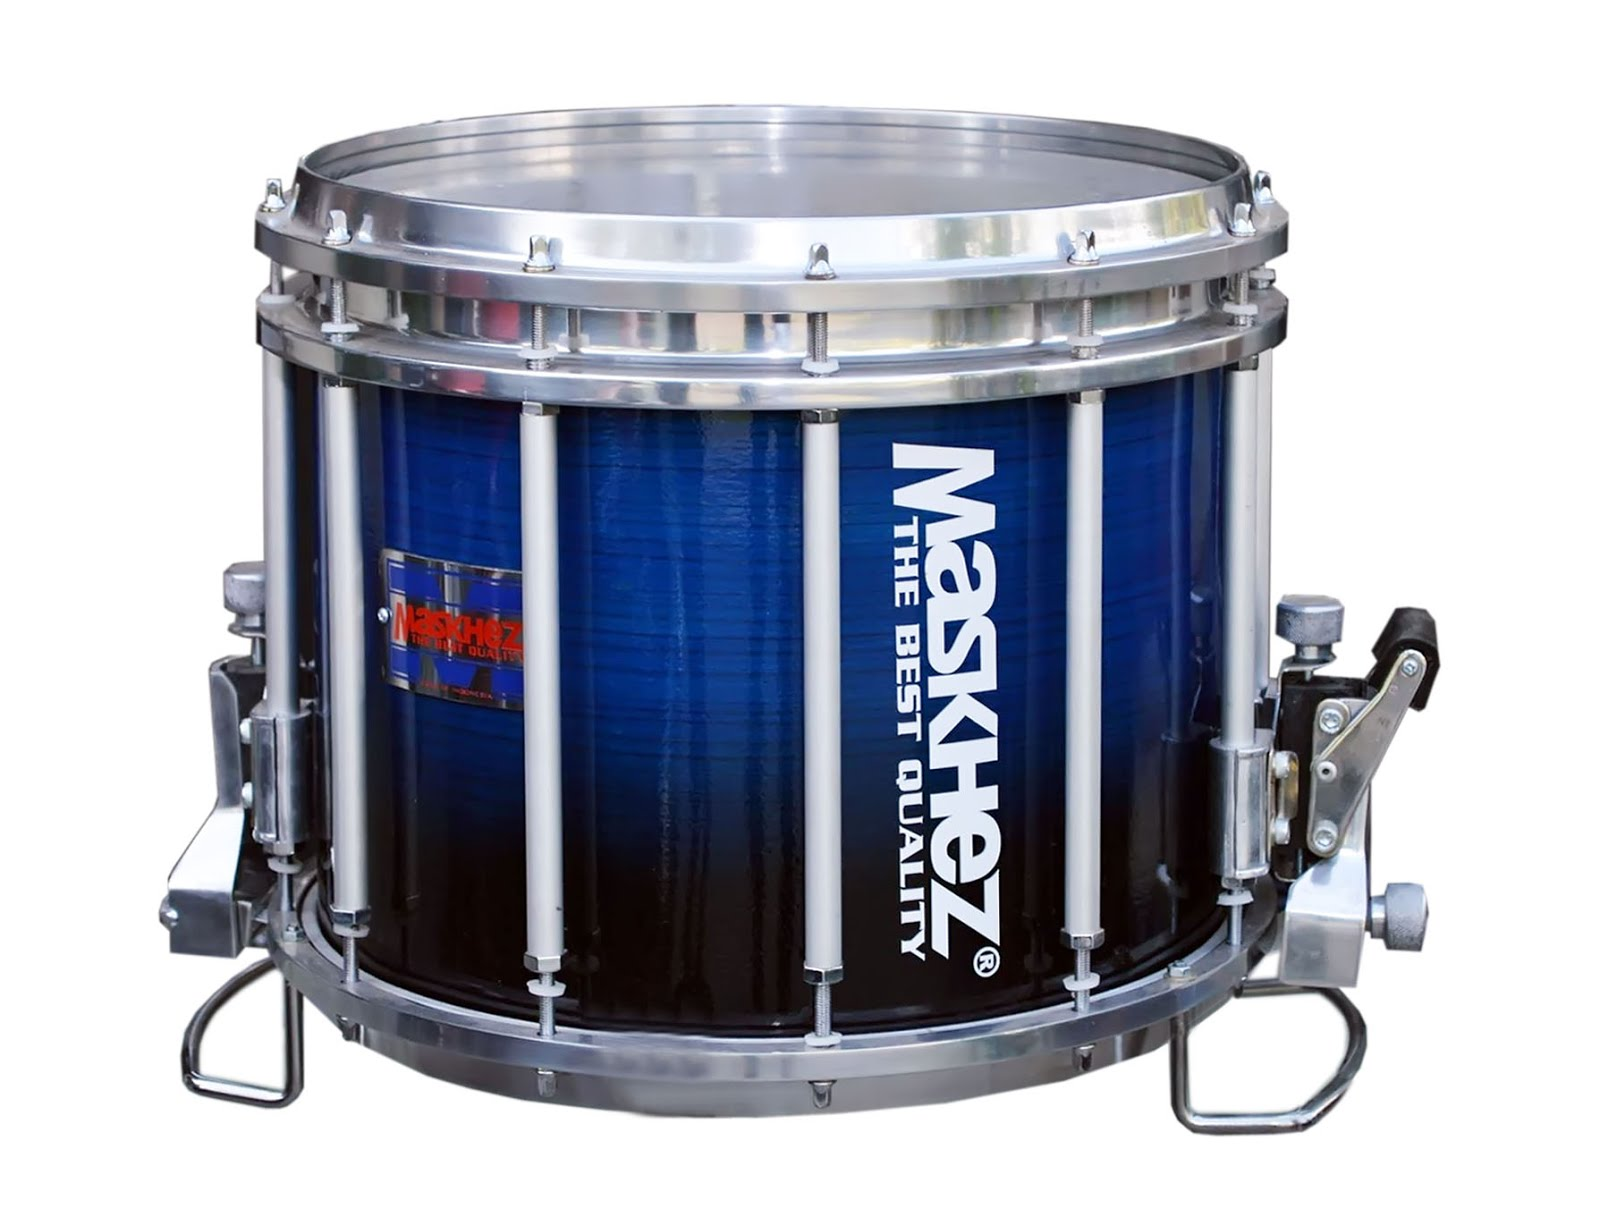 SNARE DRUM HTS 1412